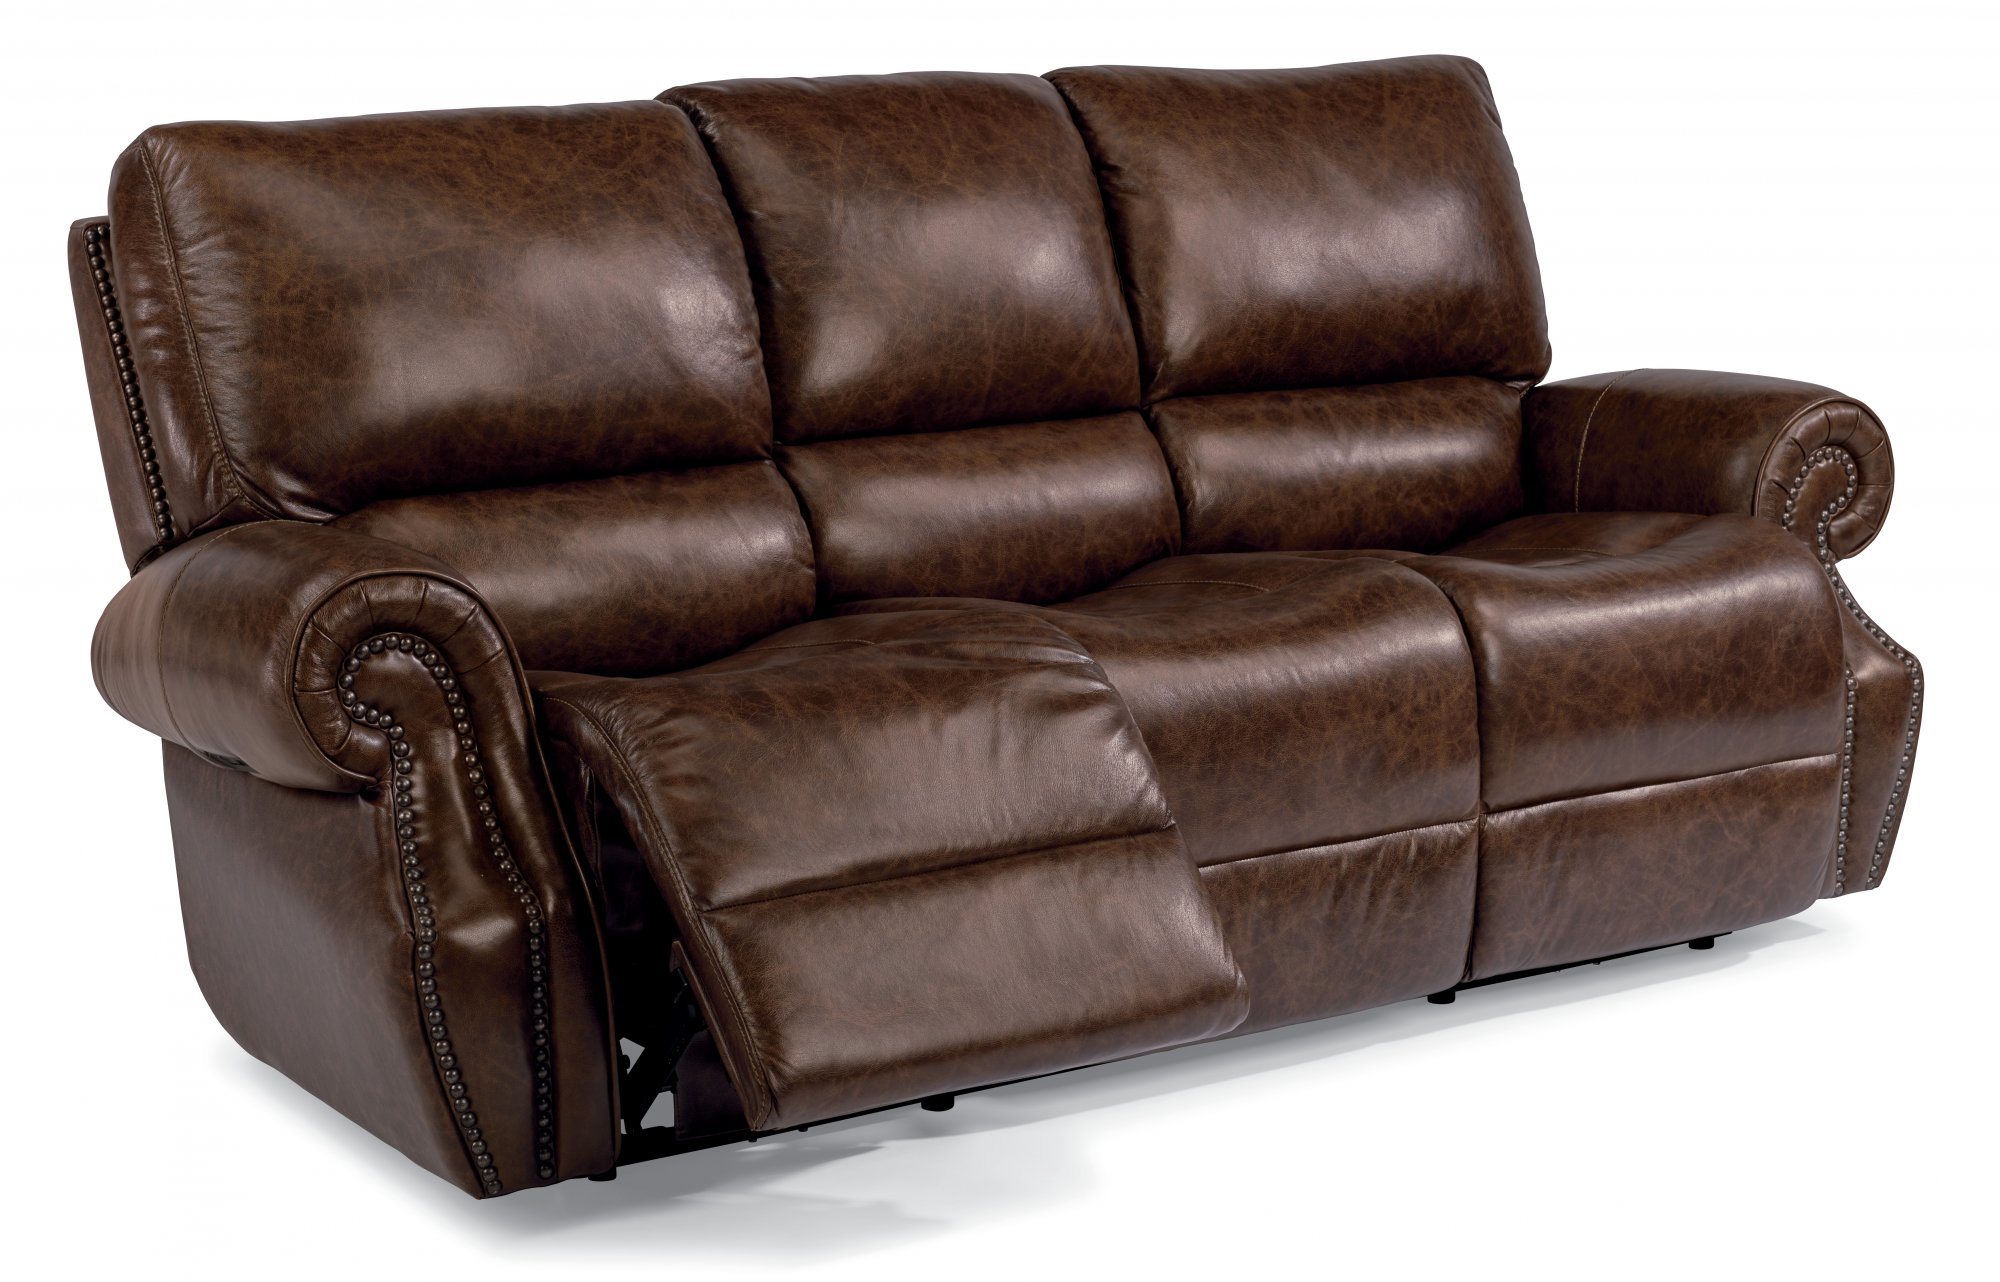 Elegant Leather Power Reclining Sofa With Power Headrests